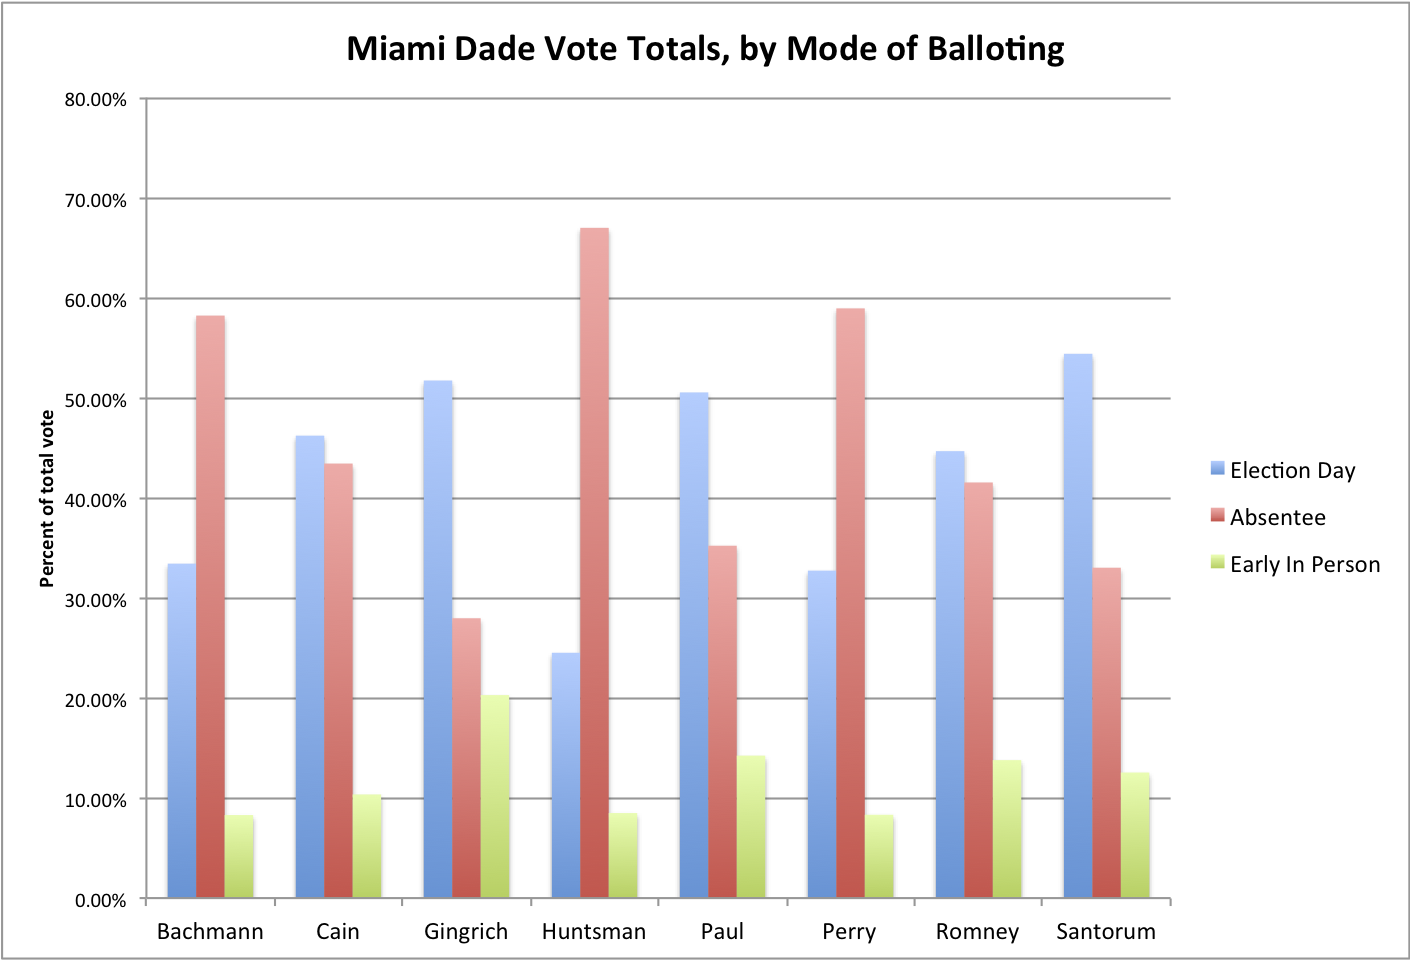 Miami Dade votes by mode